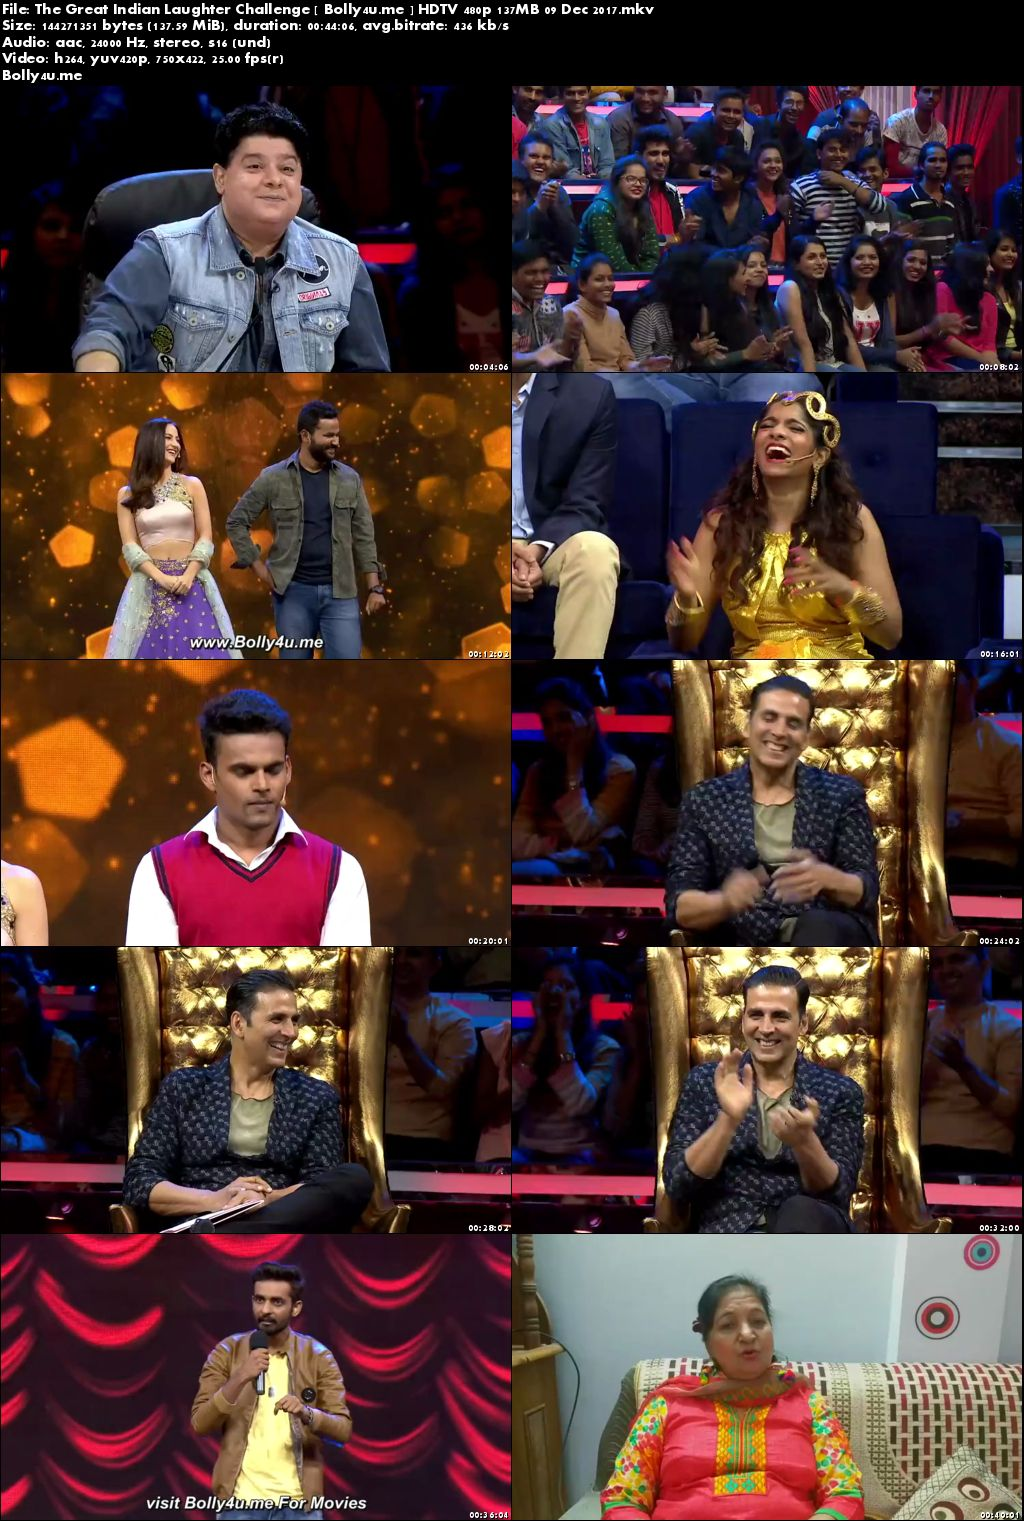 The Great Indian Laughter Challenge HDTV 480p 140MB 09 Dec 2017 Download